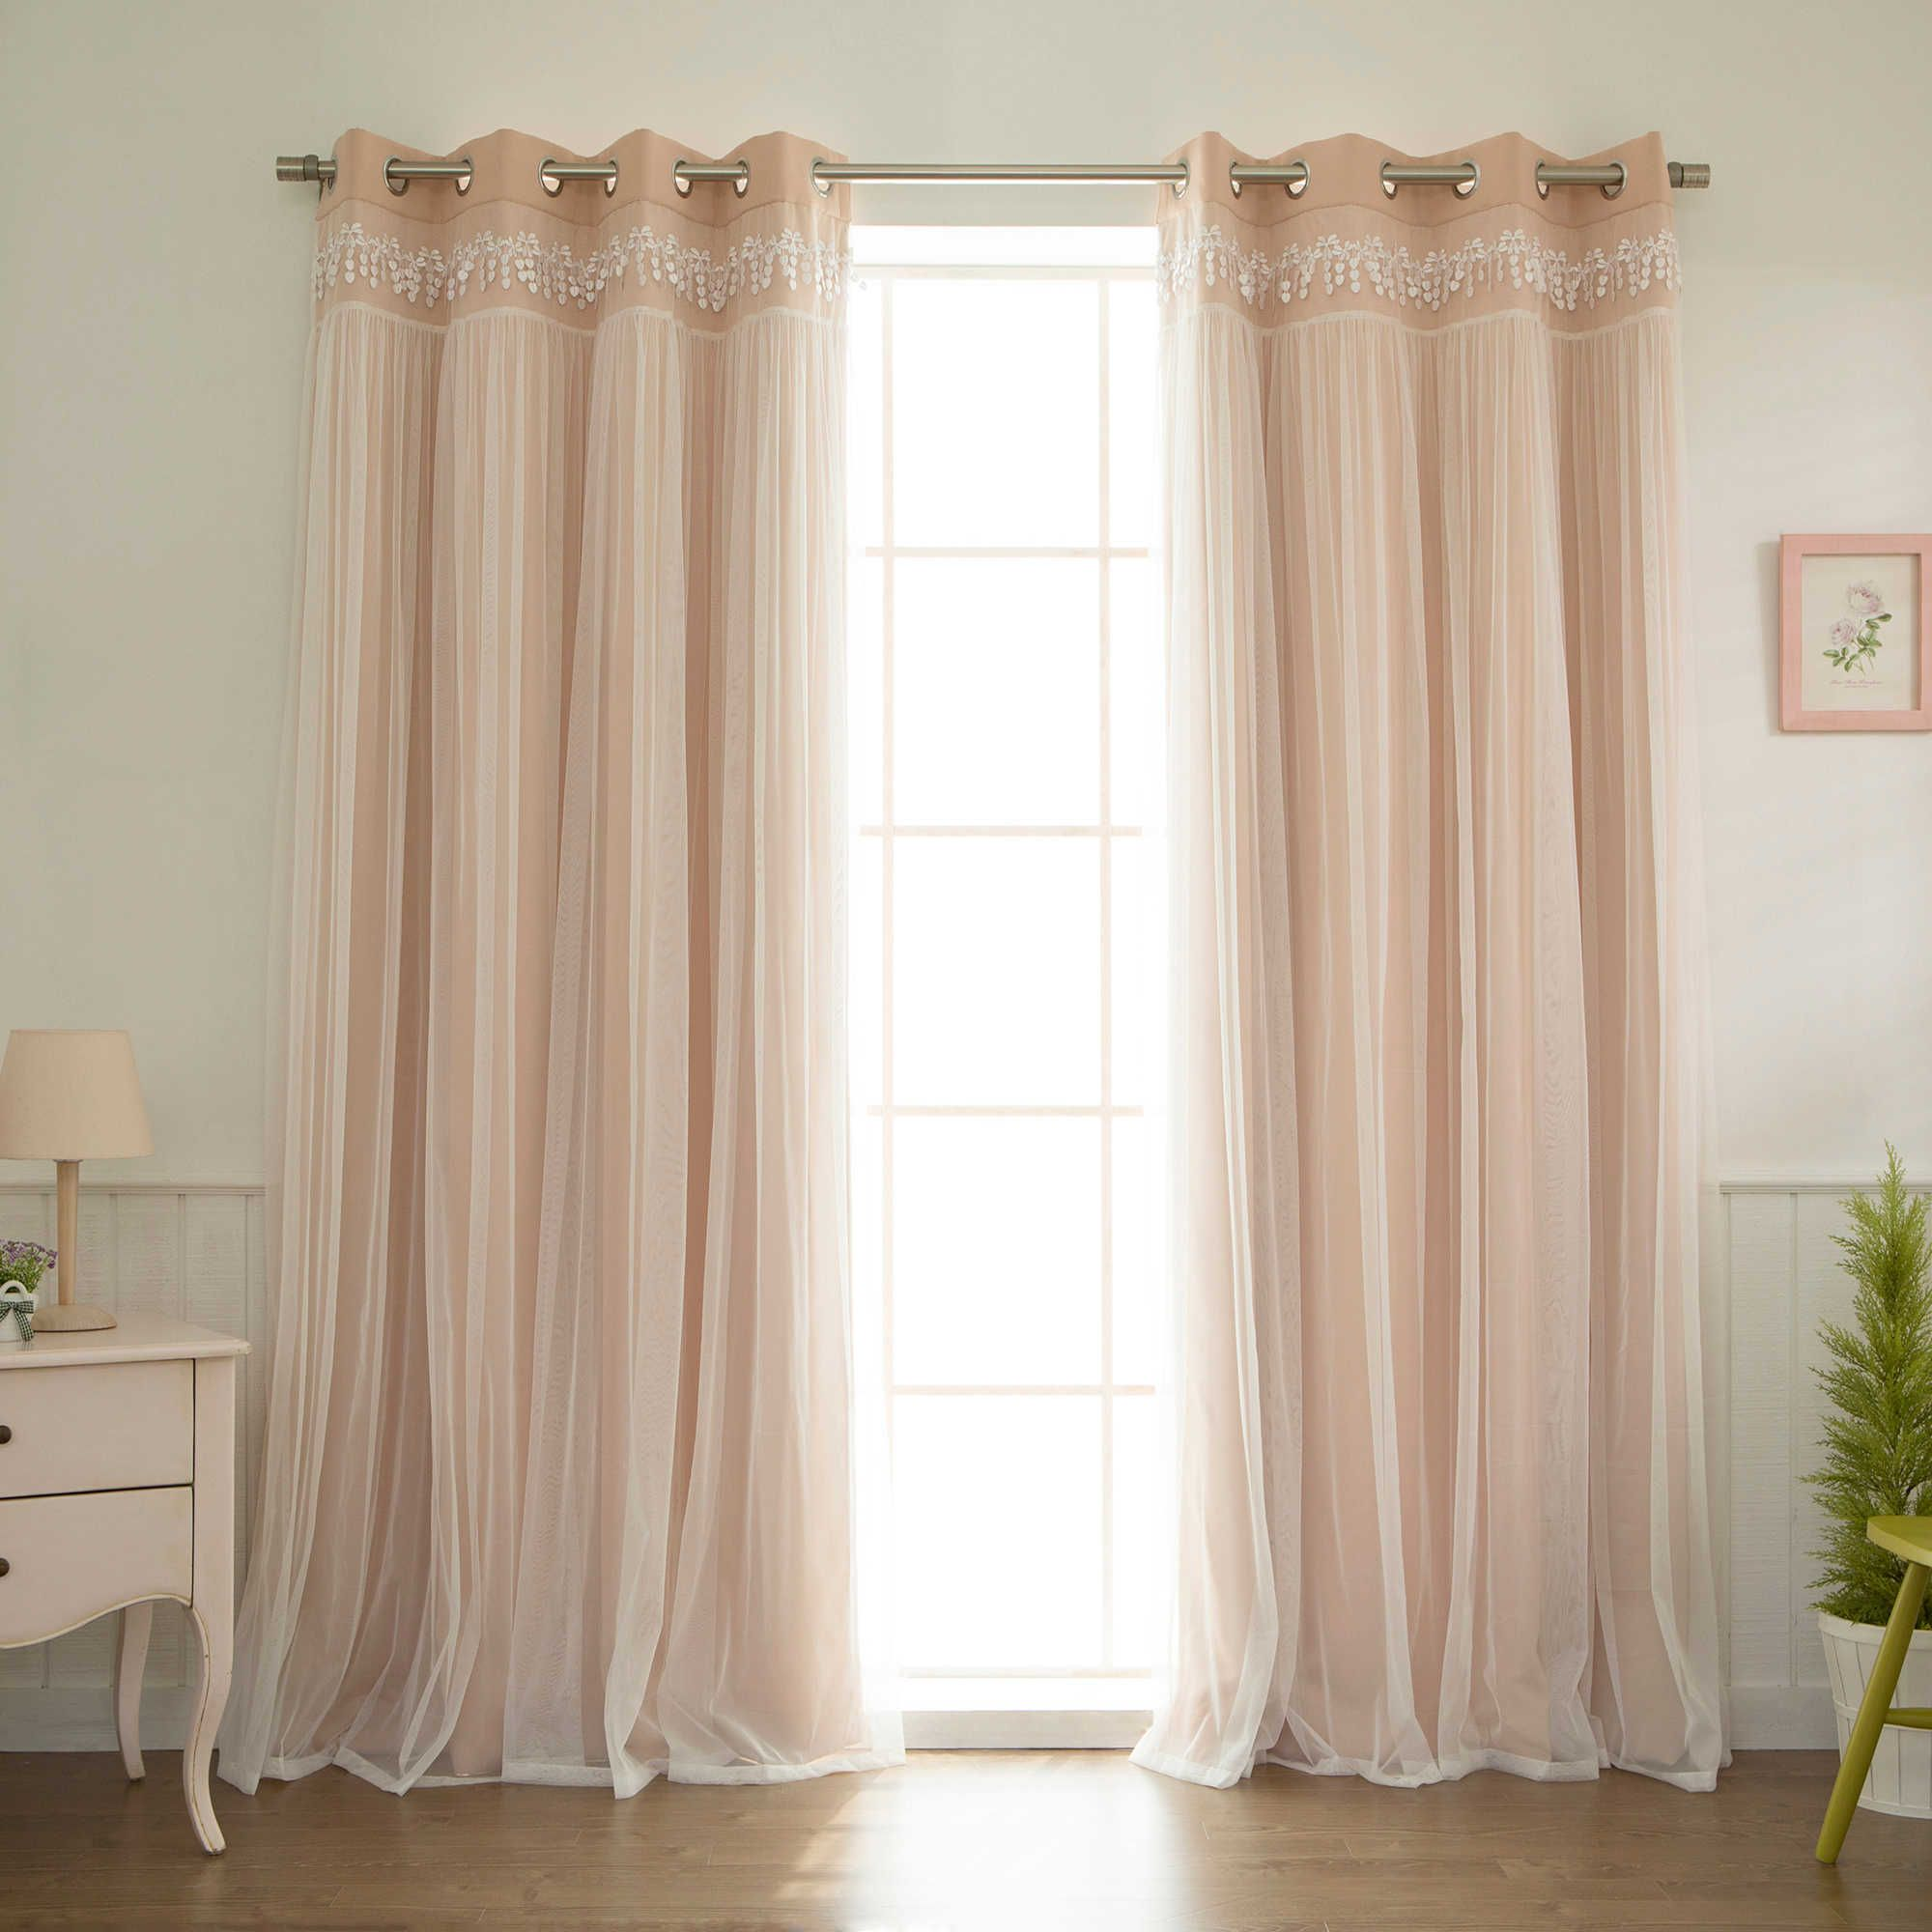 Nursery window ideas  decorinnovation sheer overlay grommet top blackout window curtain